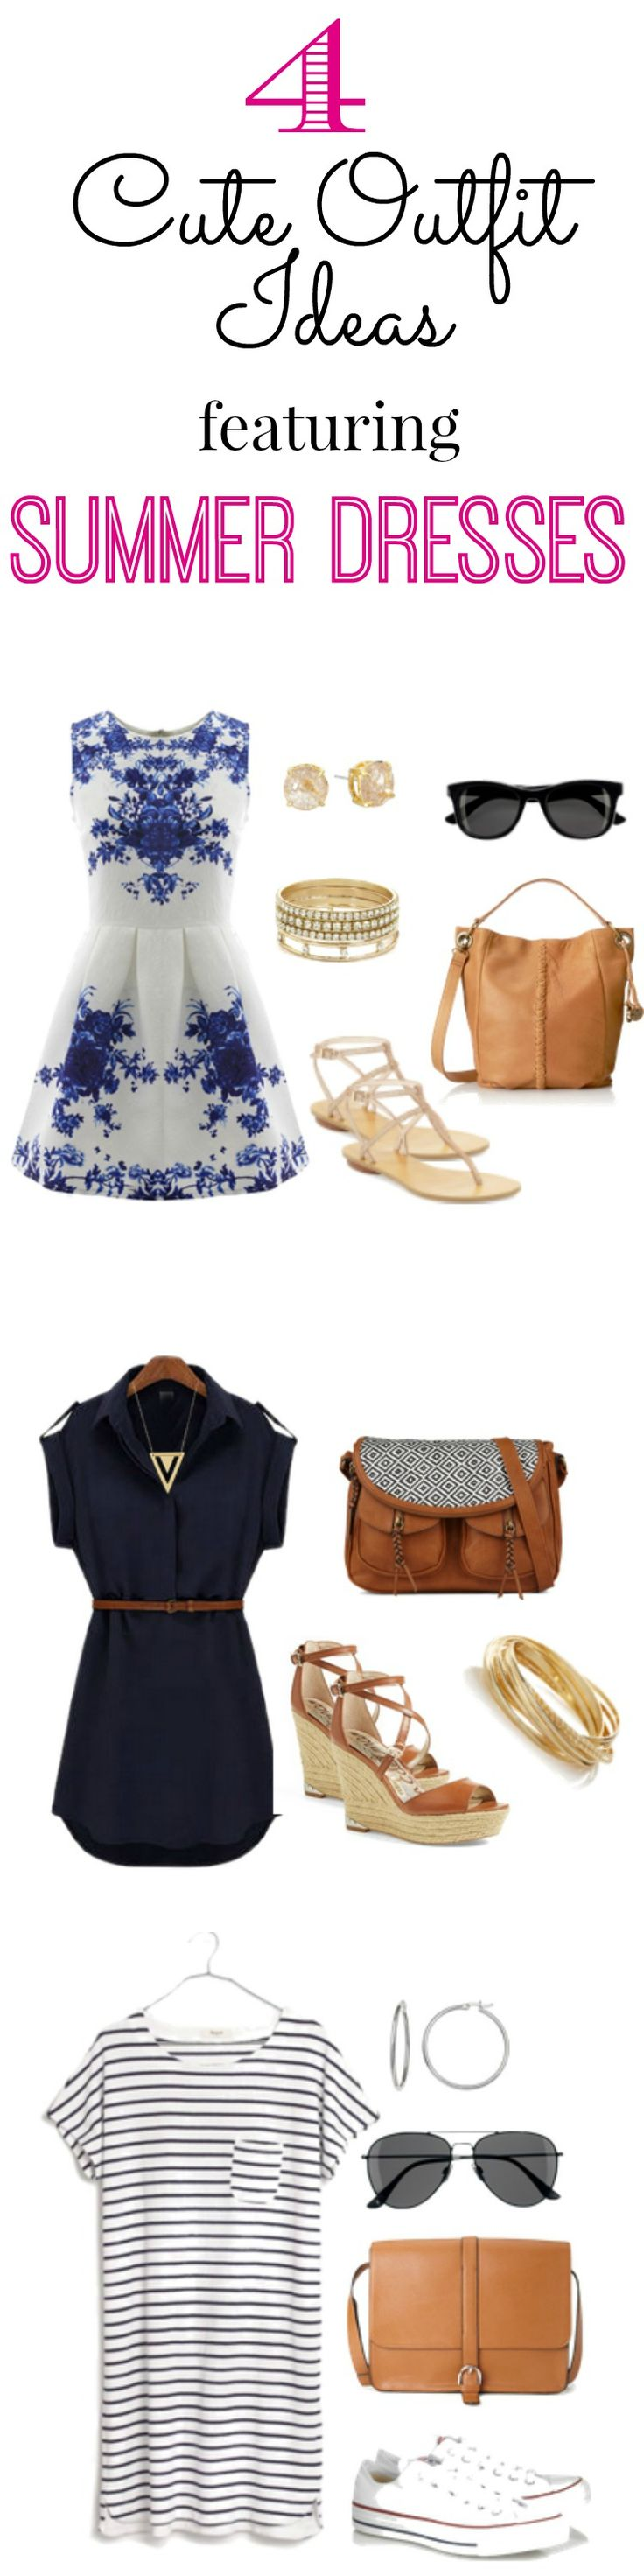 This week's Cute Outfit Ideas is all about summer dresses! From dressy and floral to casual and striped, I share four outfit ideas on how to style some of this summer's hottest dress styles.